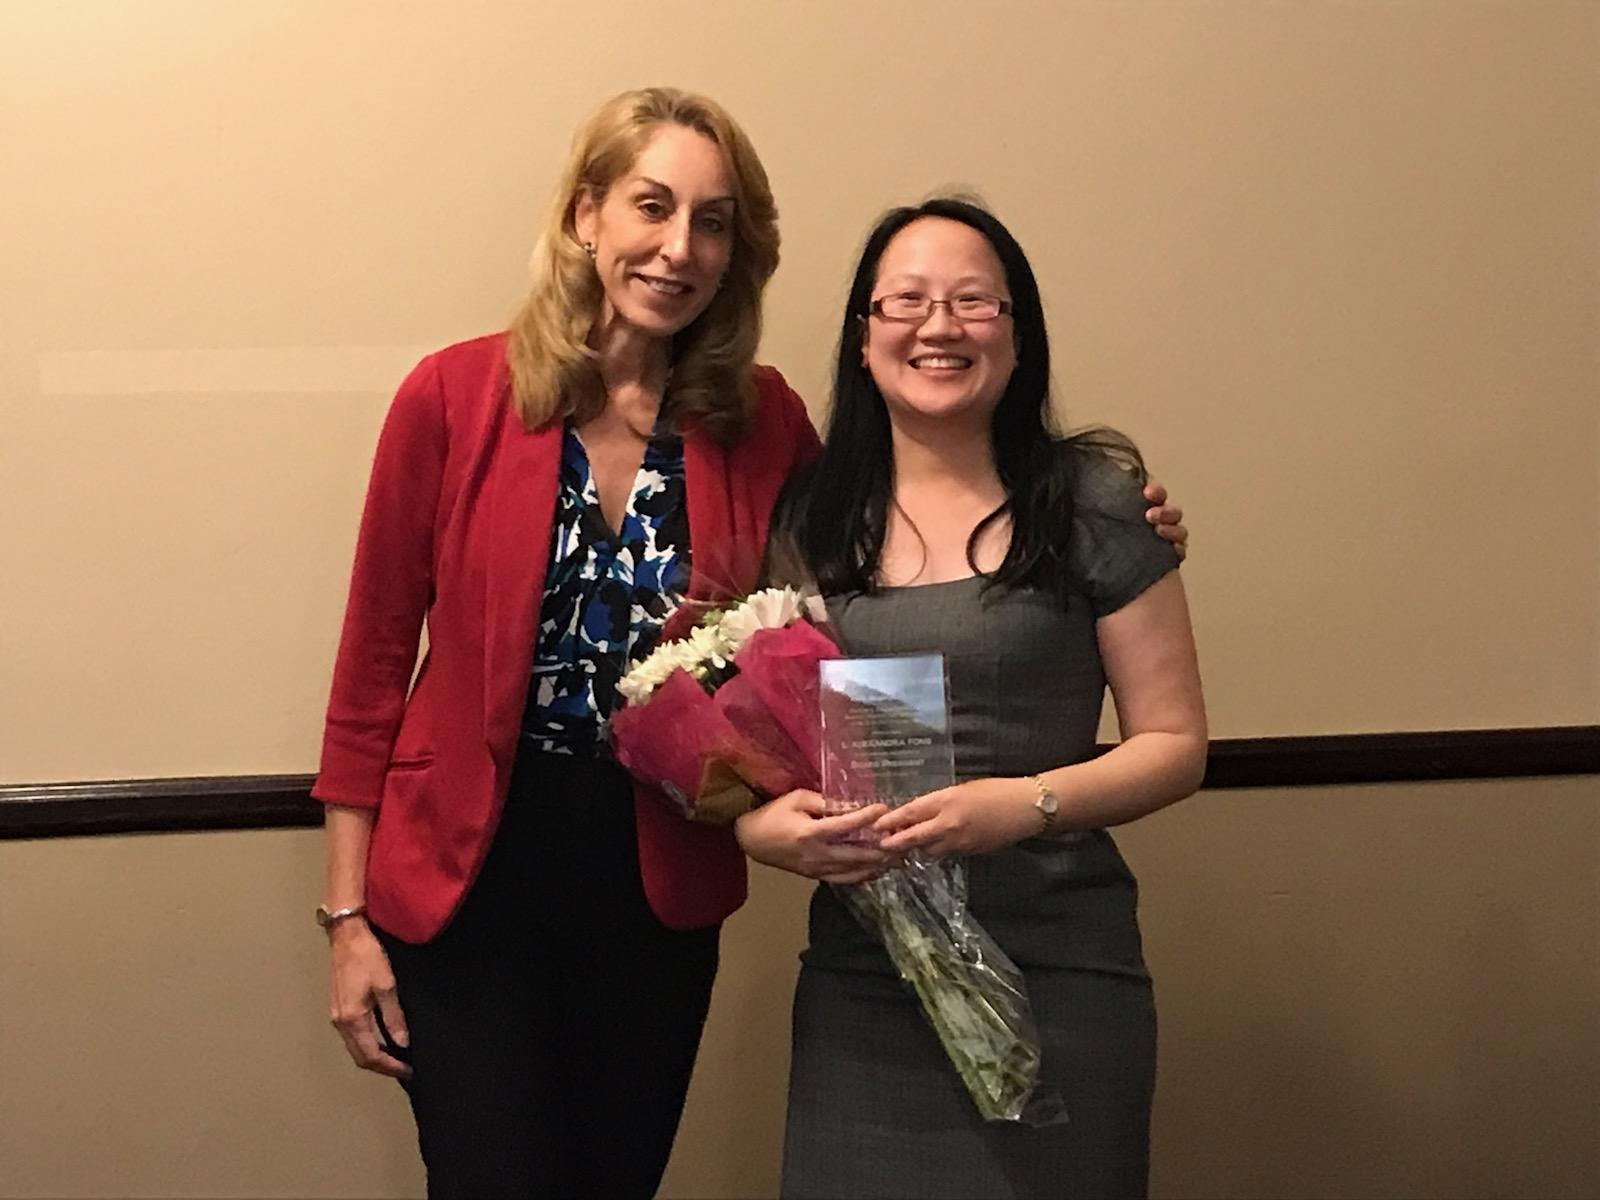 Hon. Bambi Moyer, President-Elect, and L. Alexandra Fong, President of the Leo A. Deegan Inn of Court for the 2018-2019 Program Year.